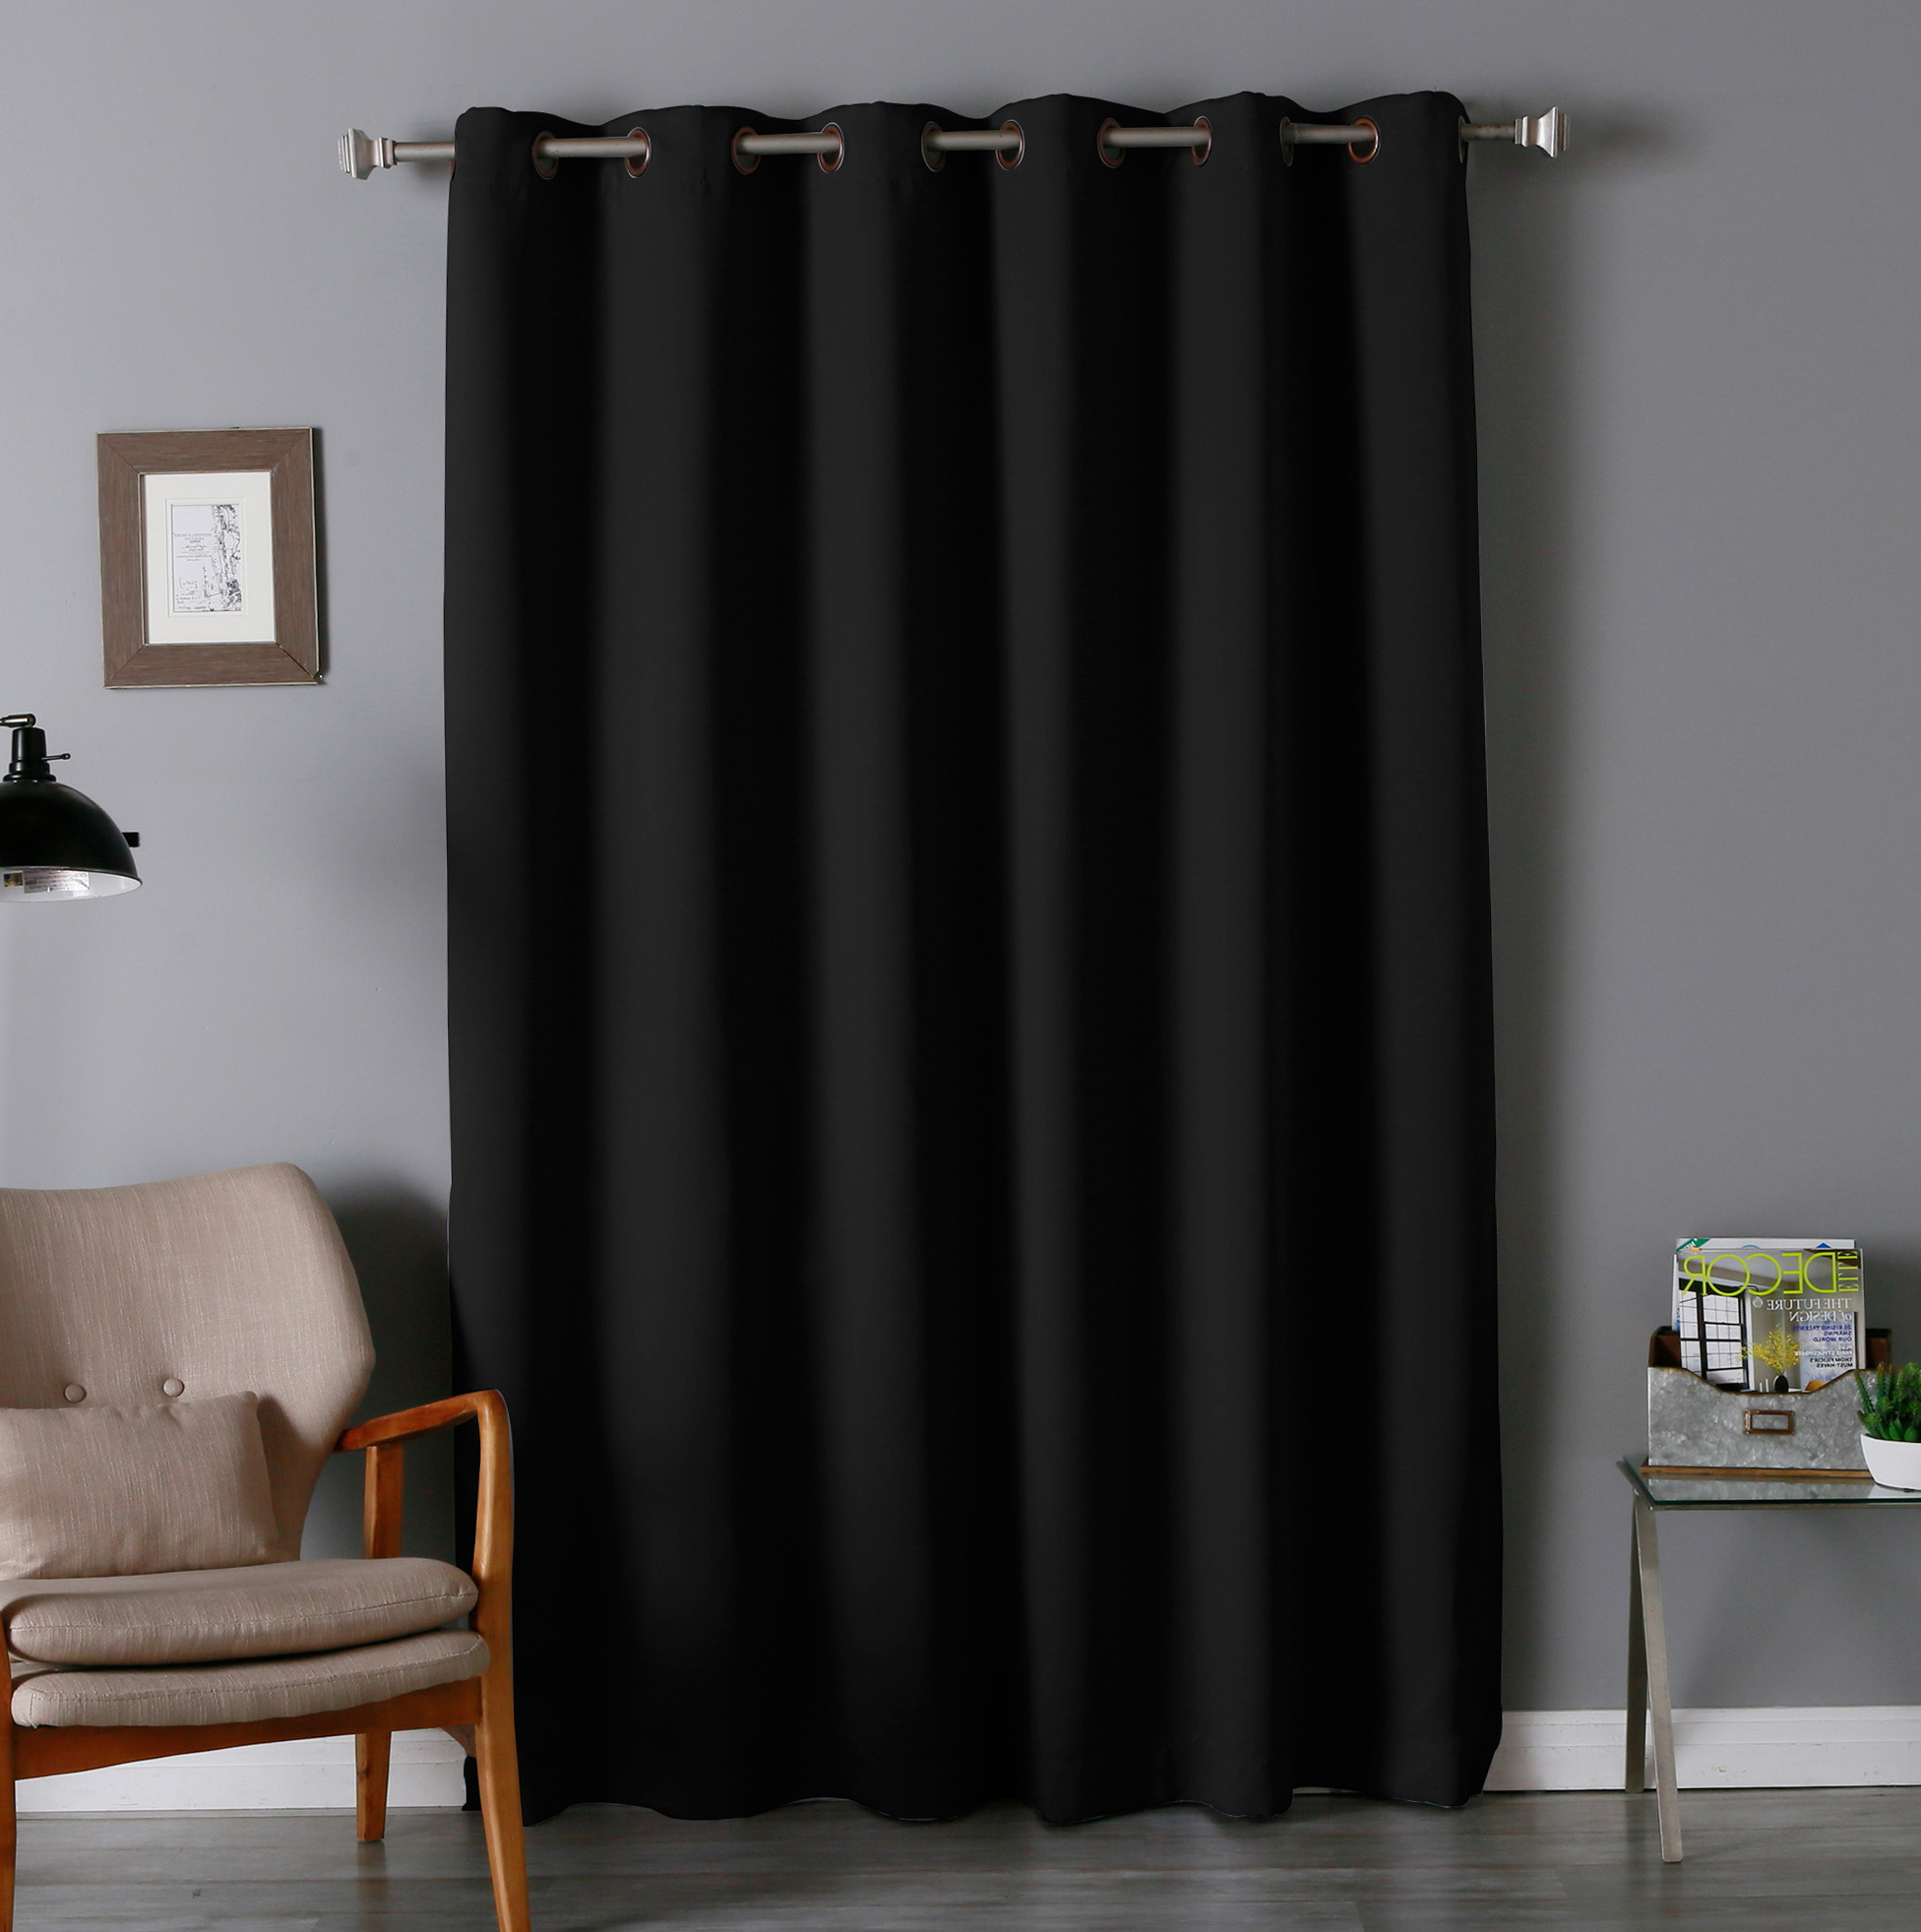 Thermal Blackout Curtains Reviews Home Design Ideas